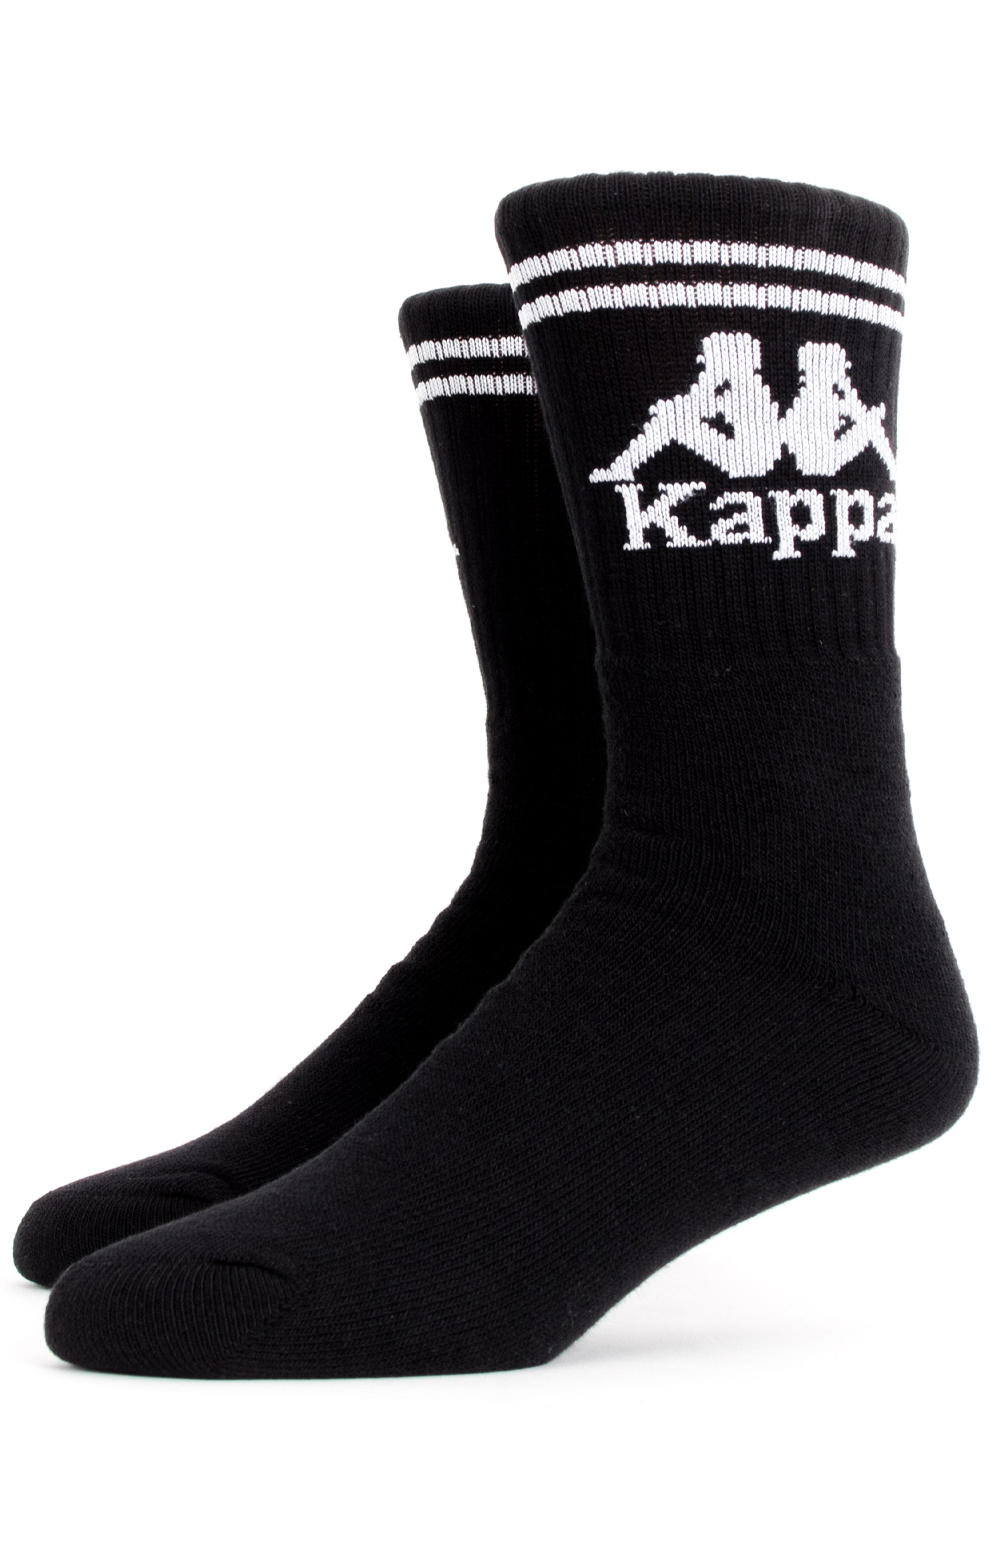 Kappa, Authentic Aster Socks - Black